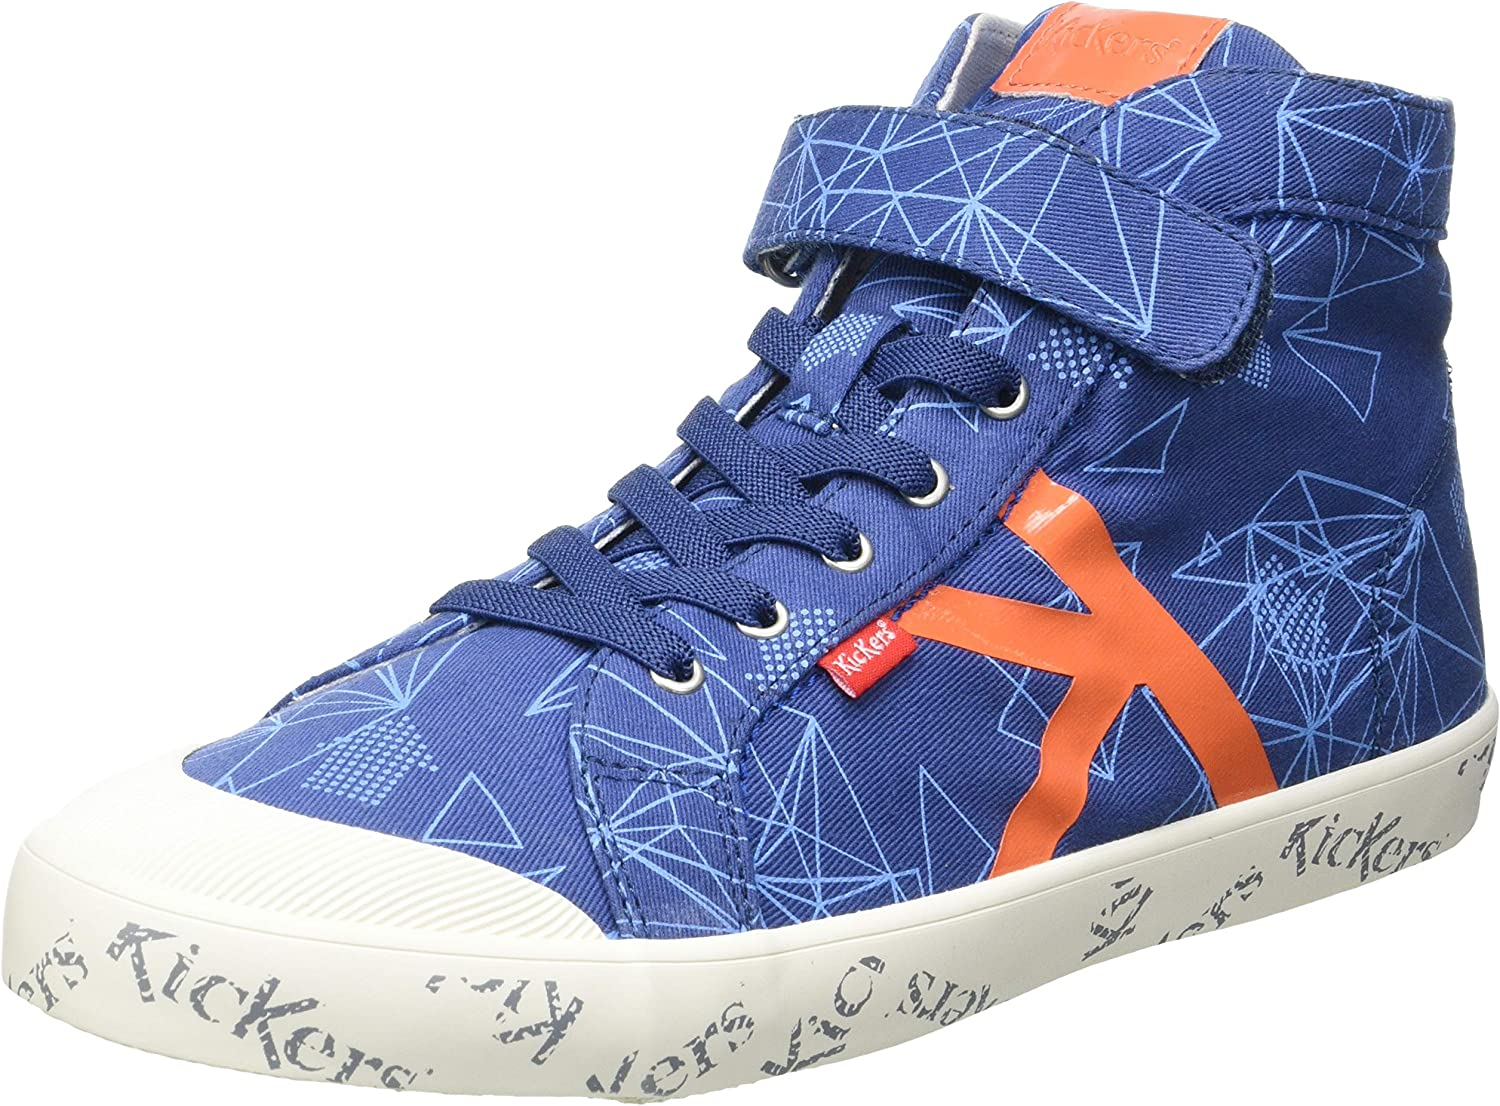 Kickers Men's We OFFer at cheap prices Godup Max 50% OFF Sneaker